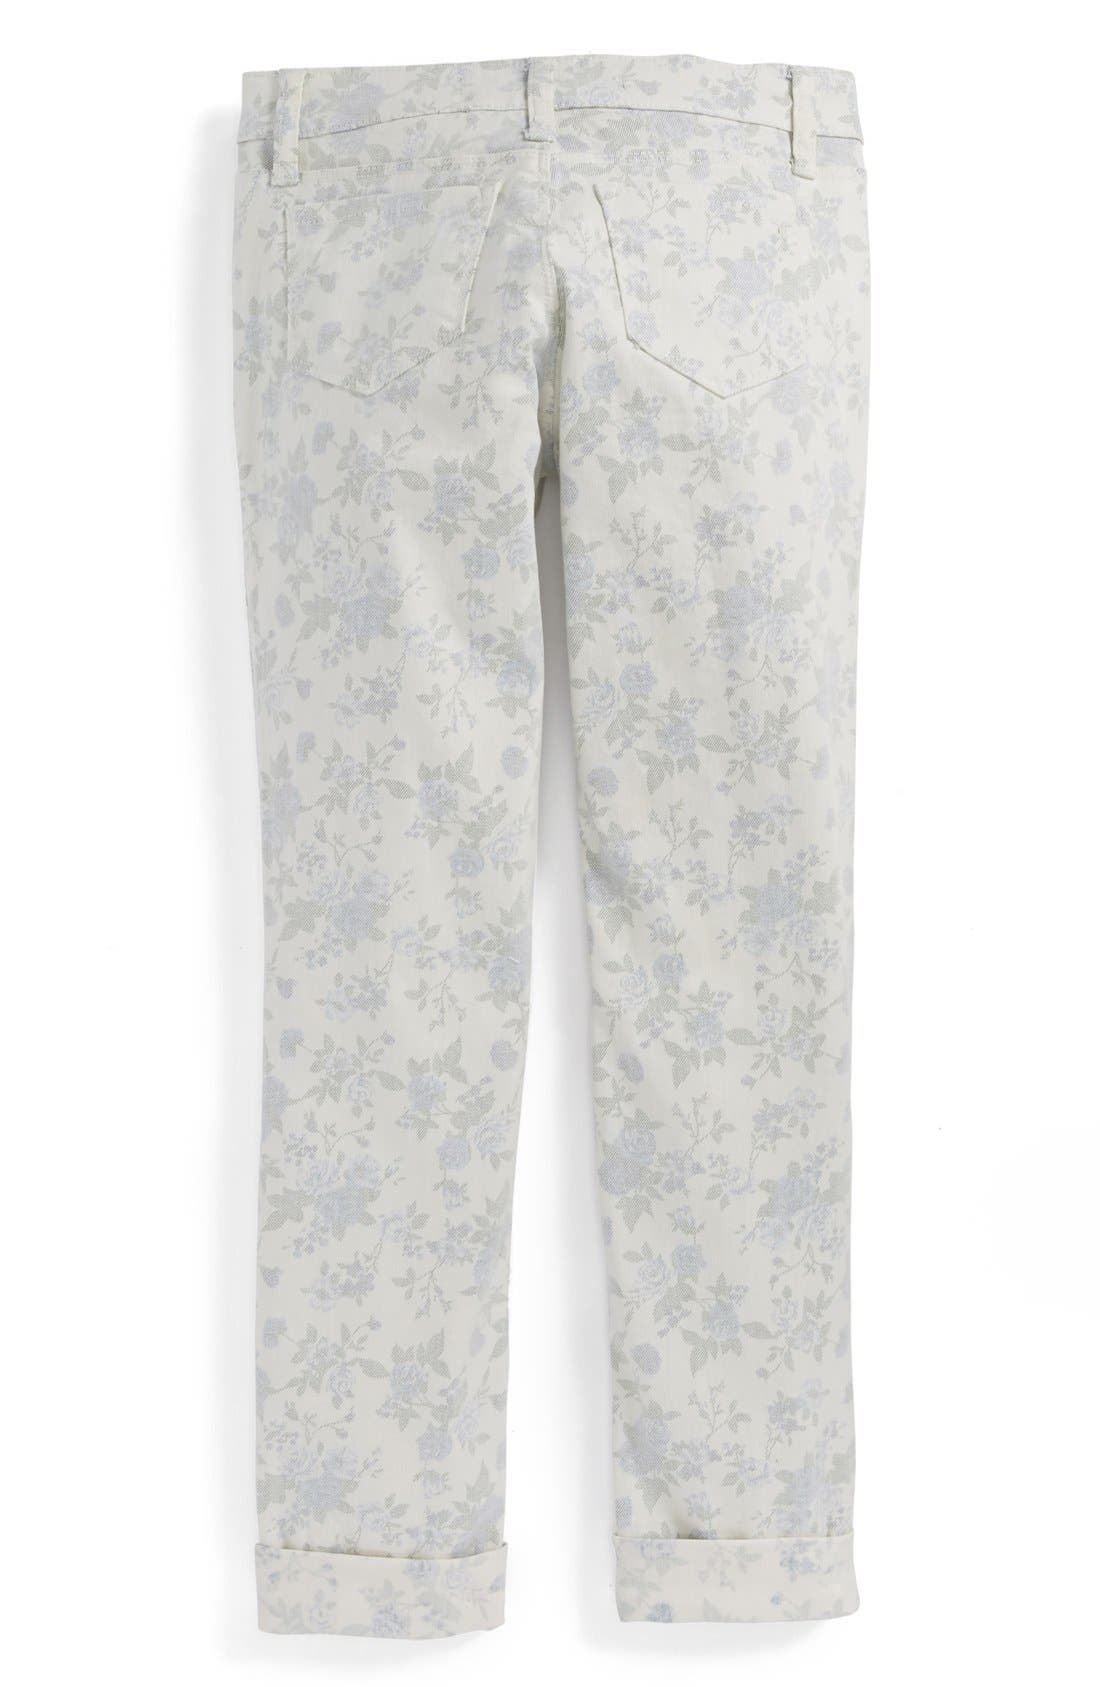 Main Image - Tractr Faded Floral Skinny Jeans (Big Girls)